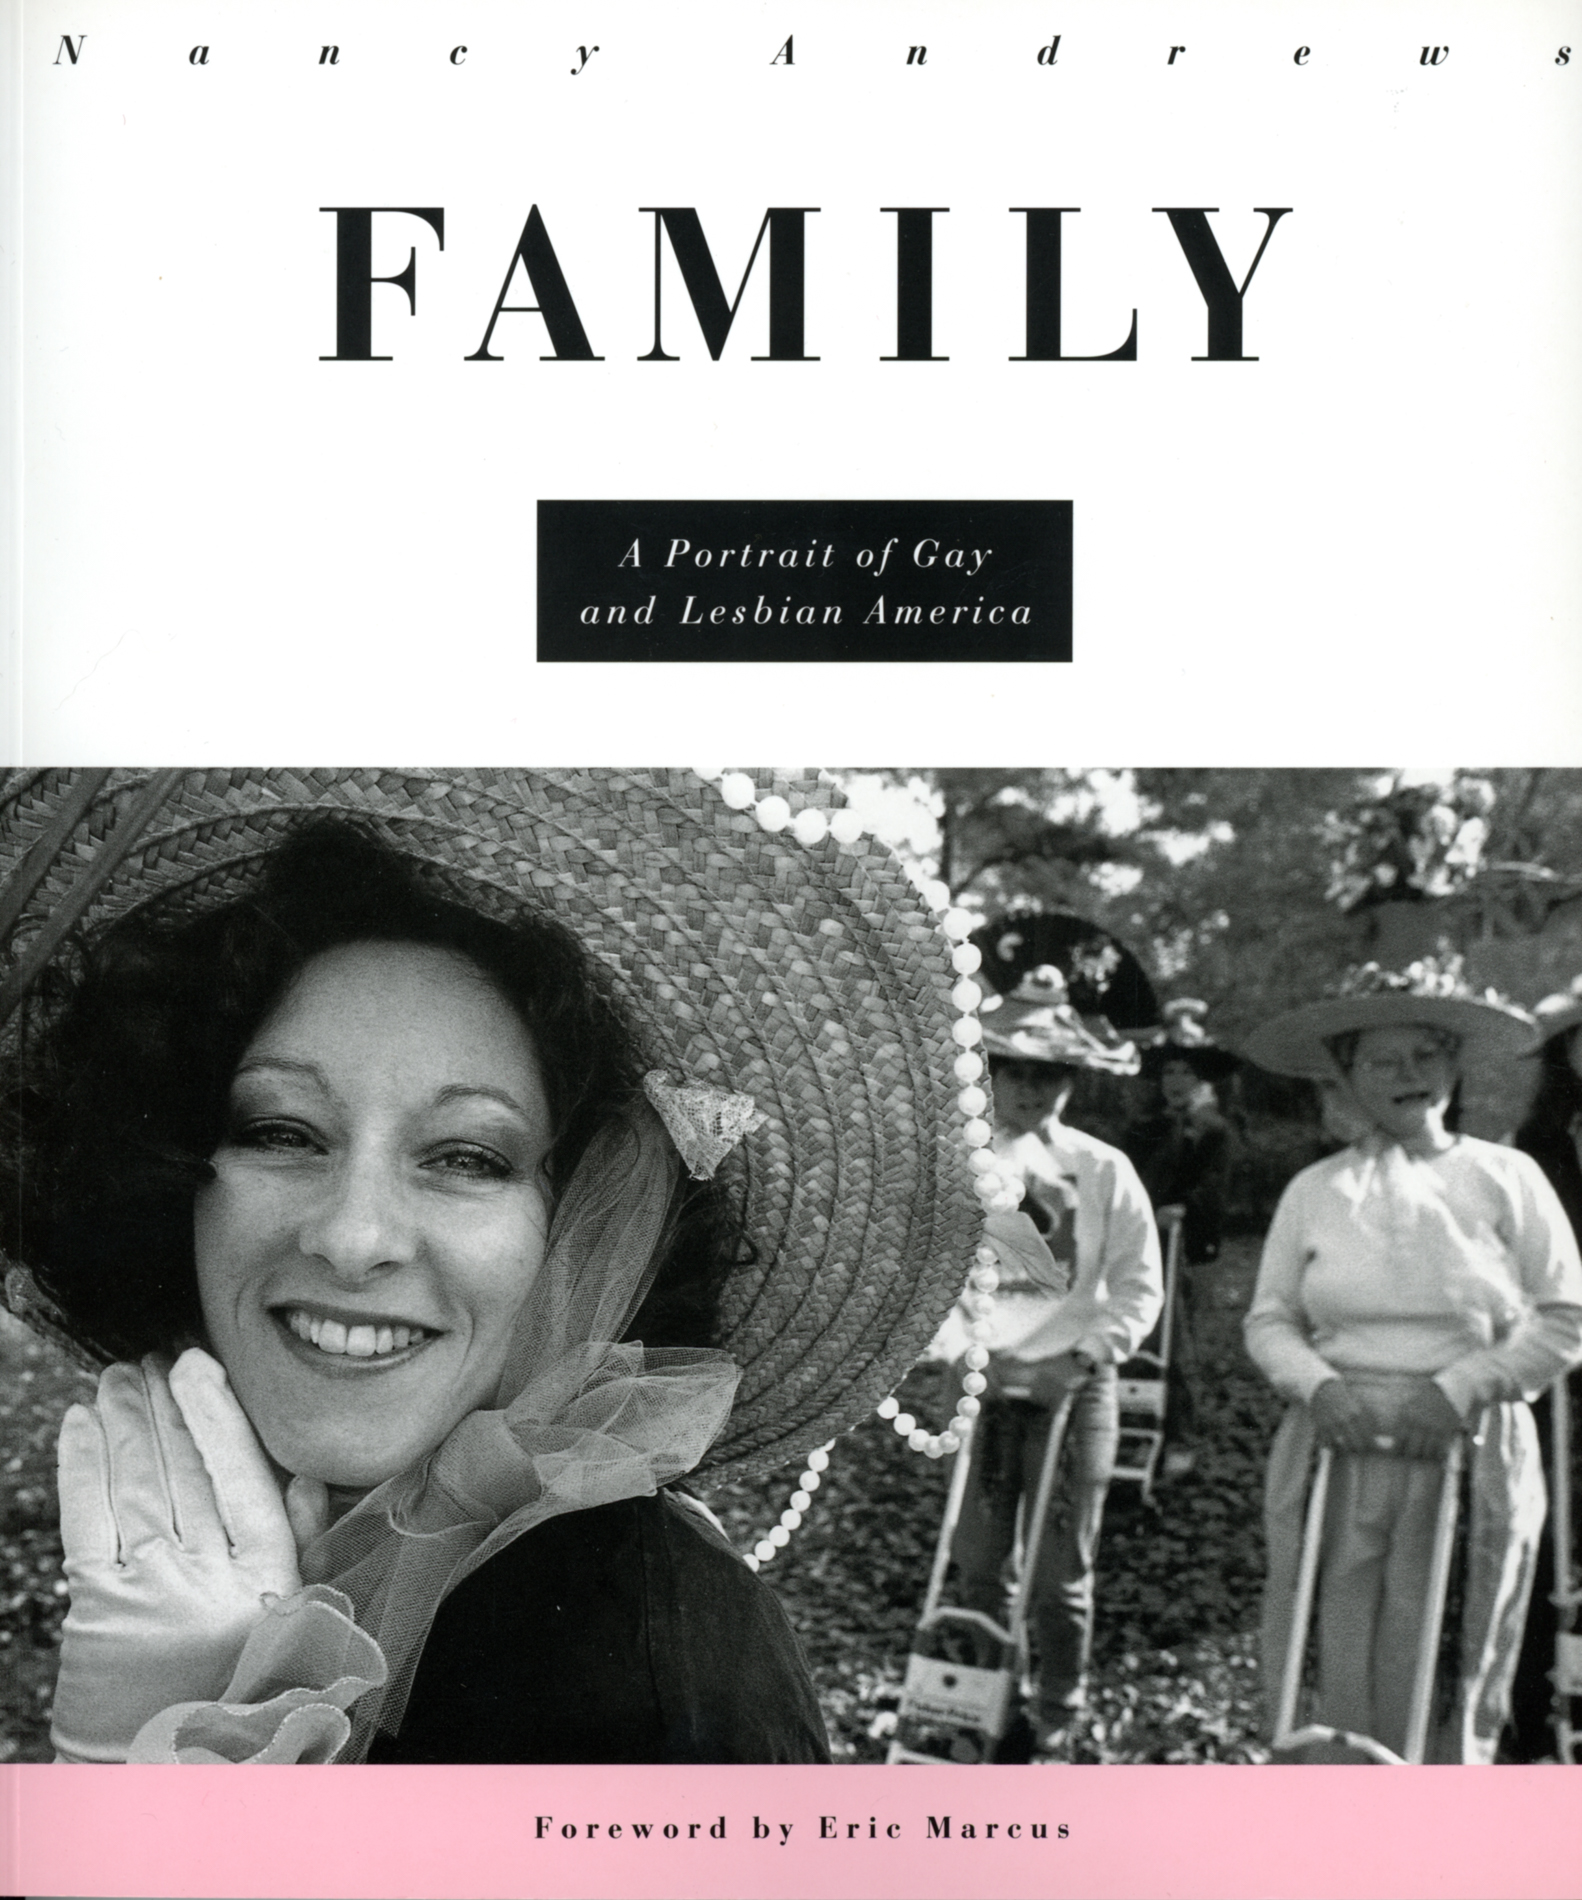 FAMILY: A Portrait of Gay and Lesbian America